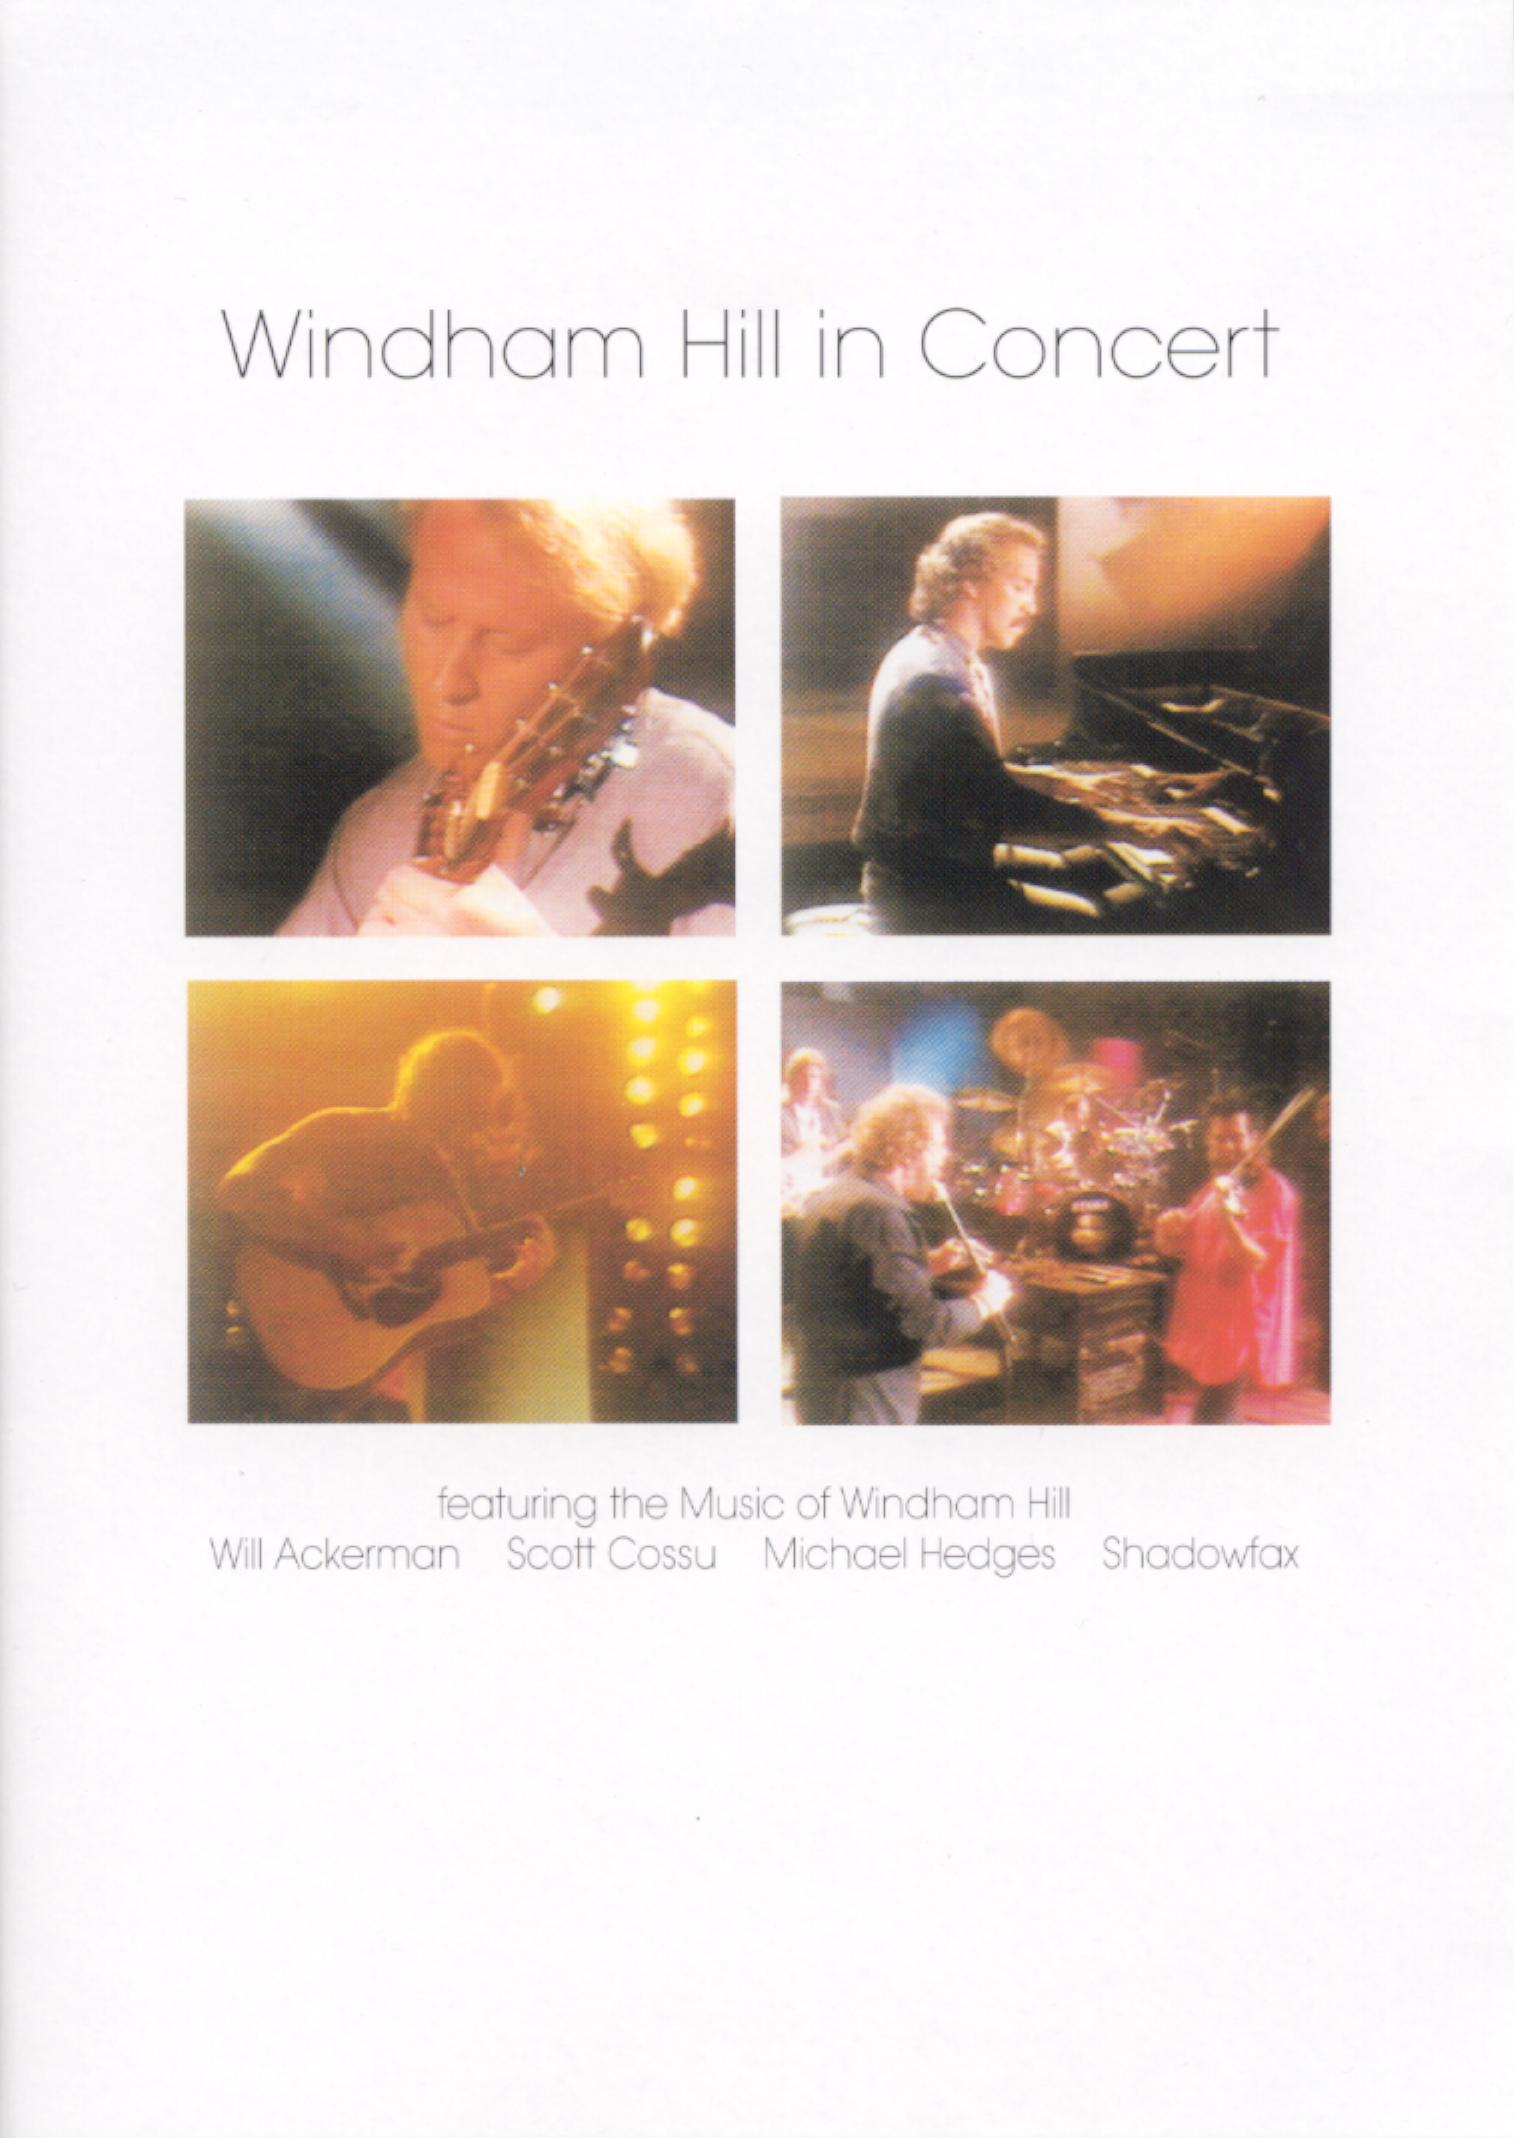 Windham Hill in Concert